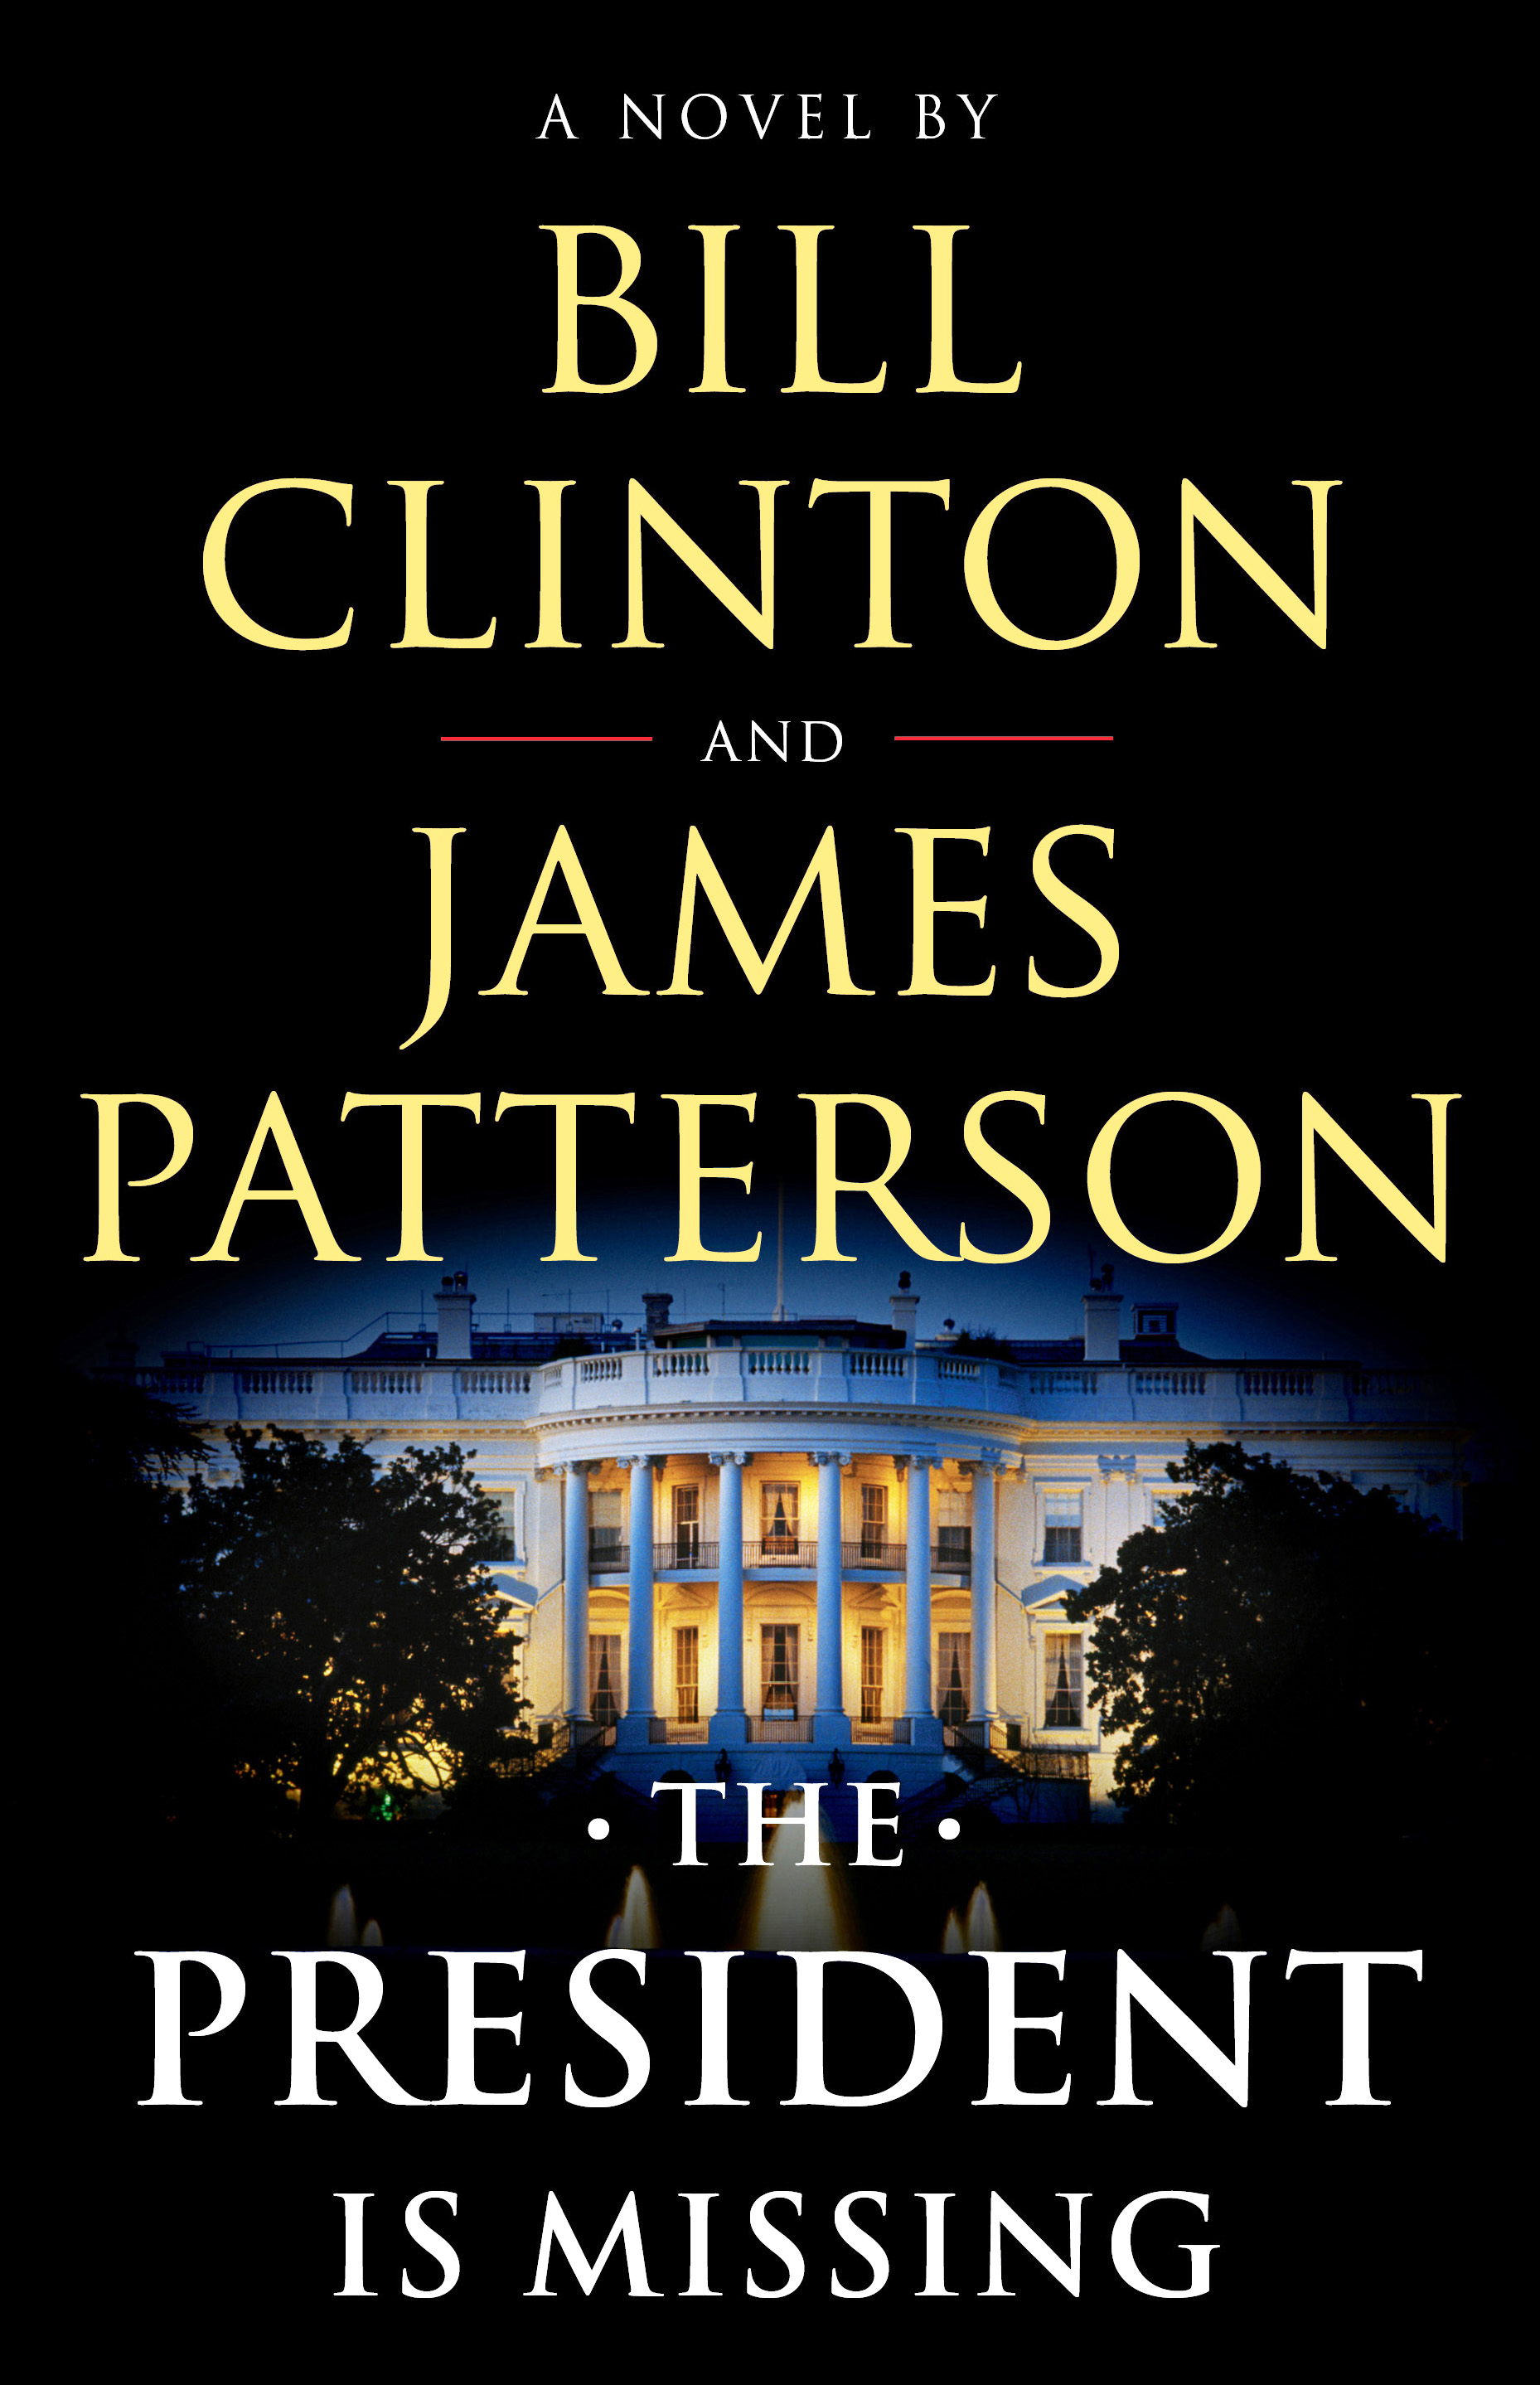 Book review The President Is Missing by Bill Clinton and